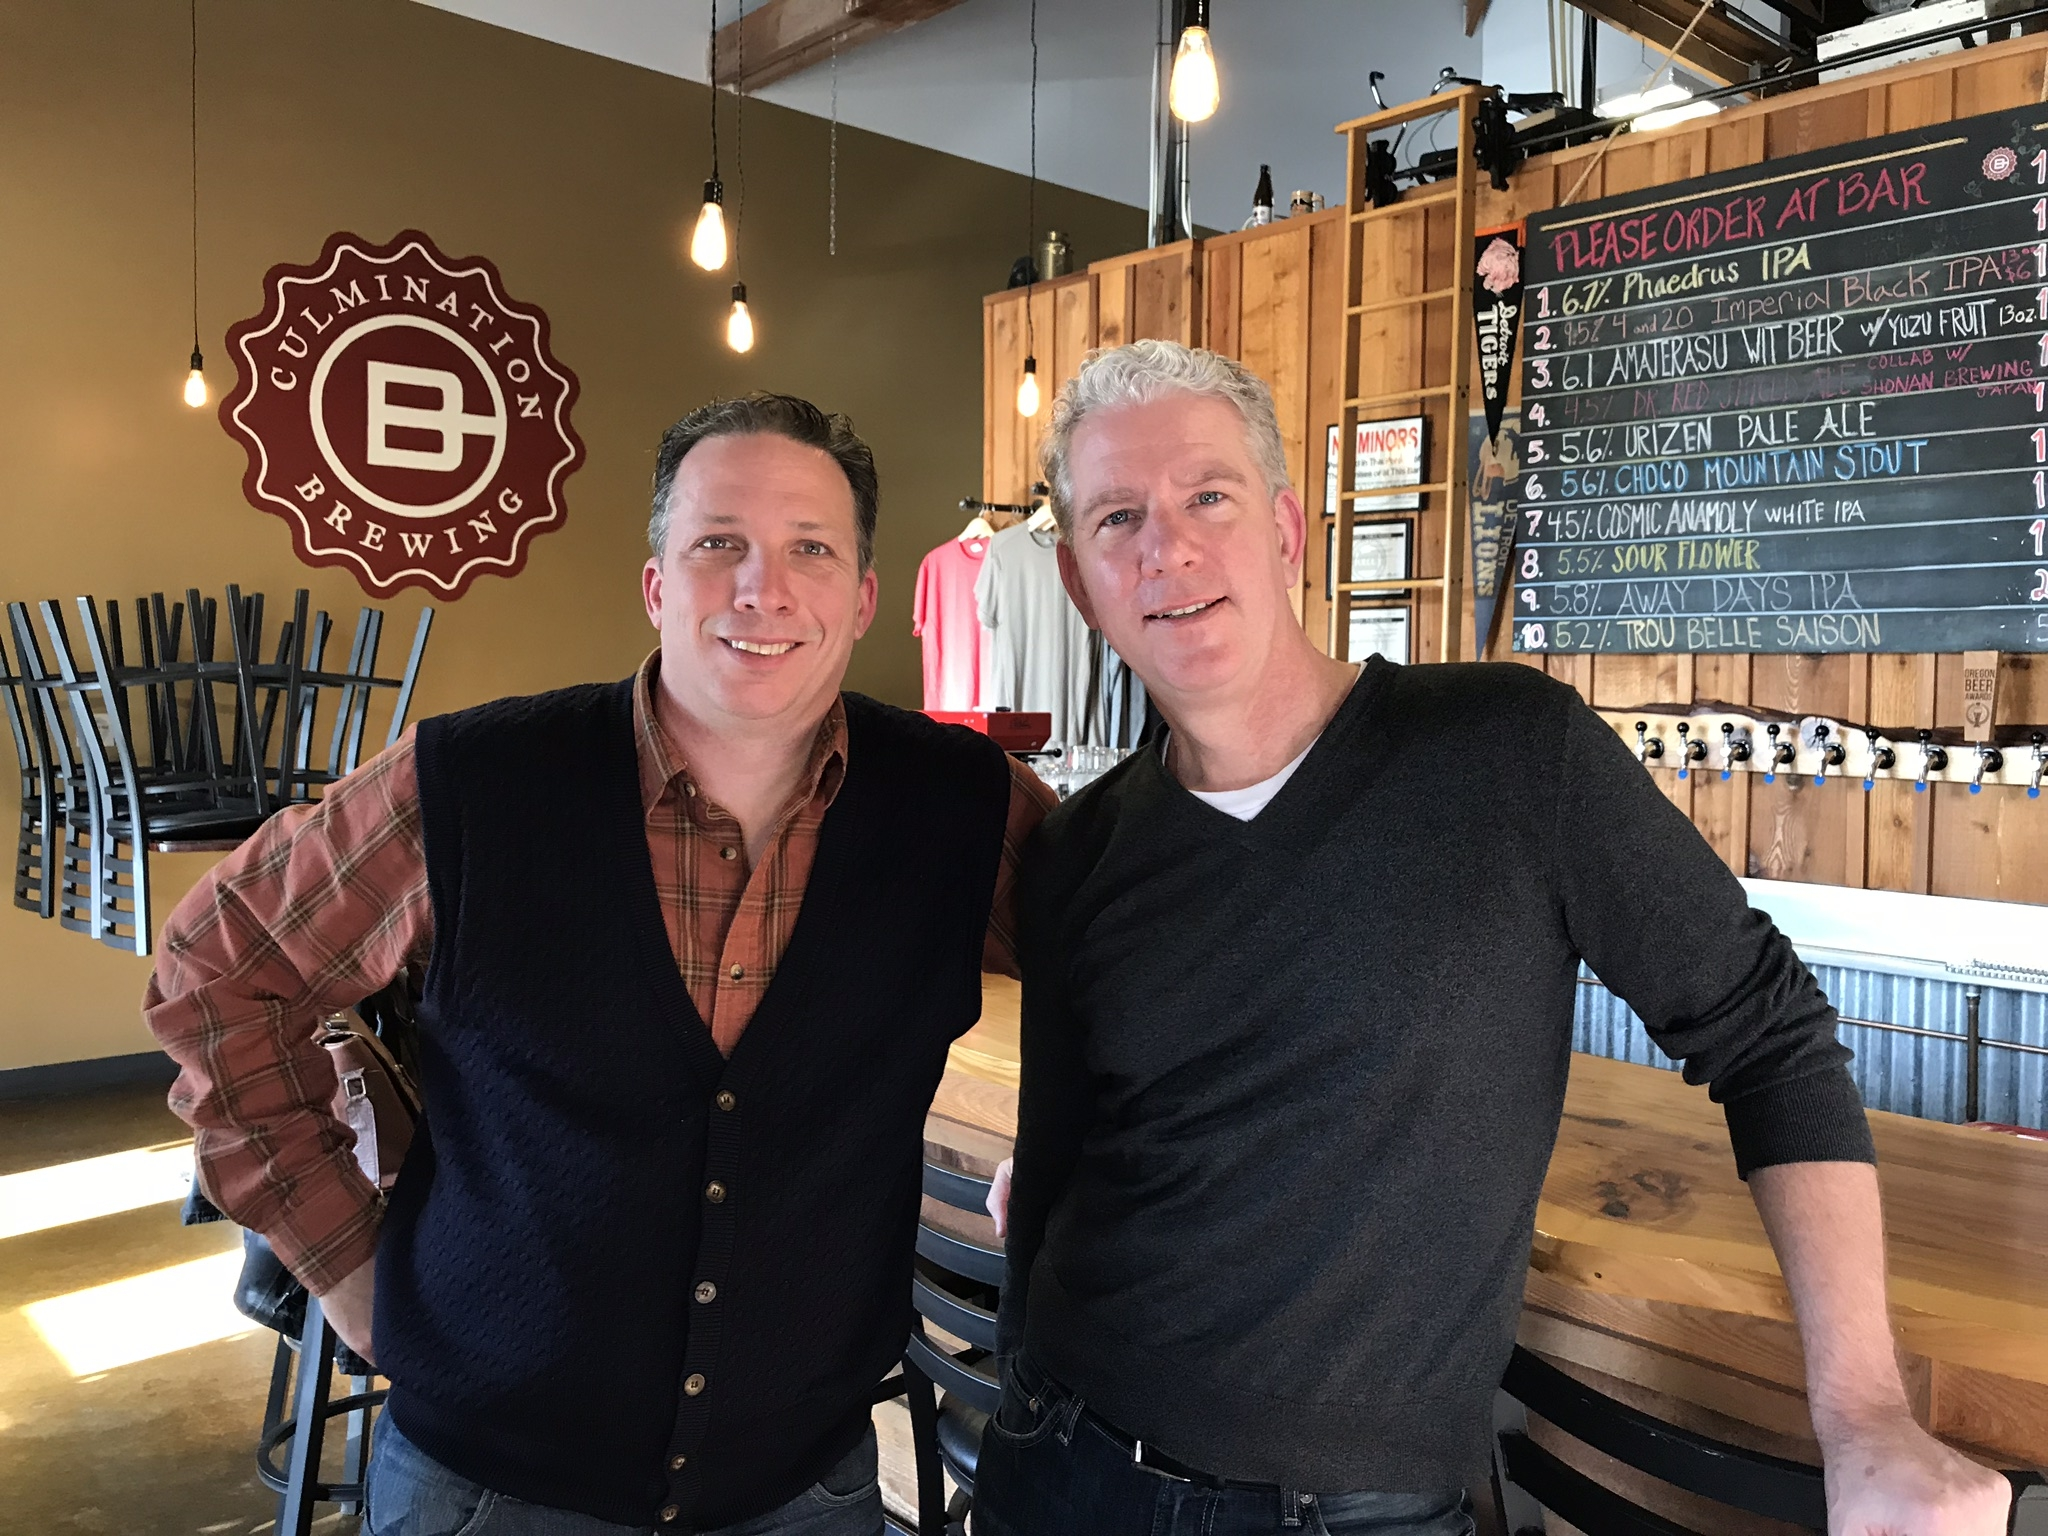 Tony Starlight Tony Starlight Showroom and Steve Brown Spin Catering – Portland Culinary Podcast Episode 43 by Steven Shomler